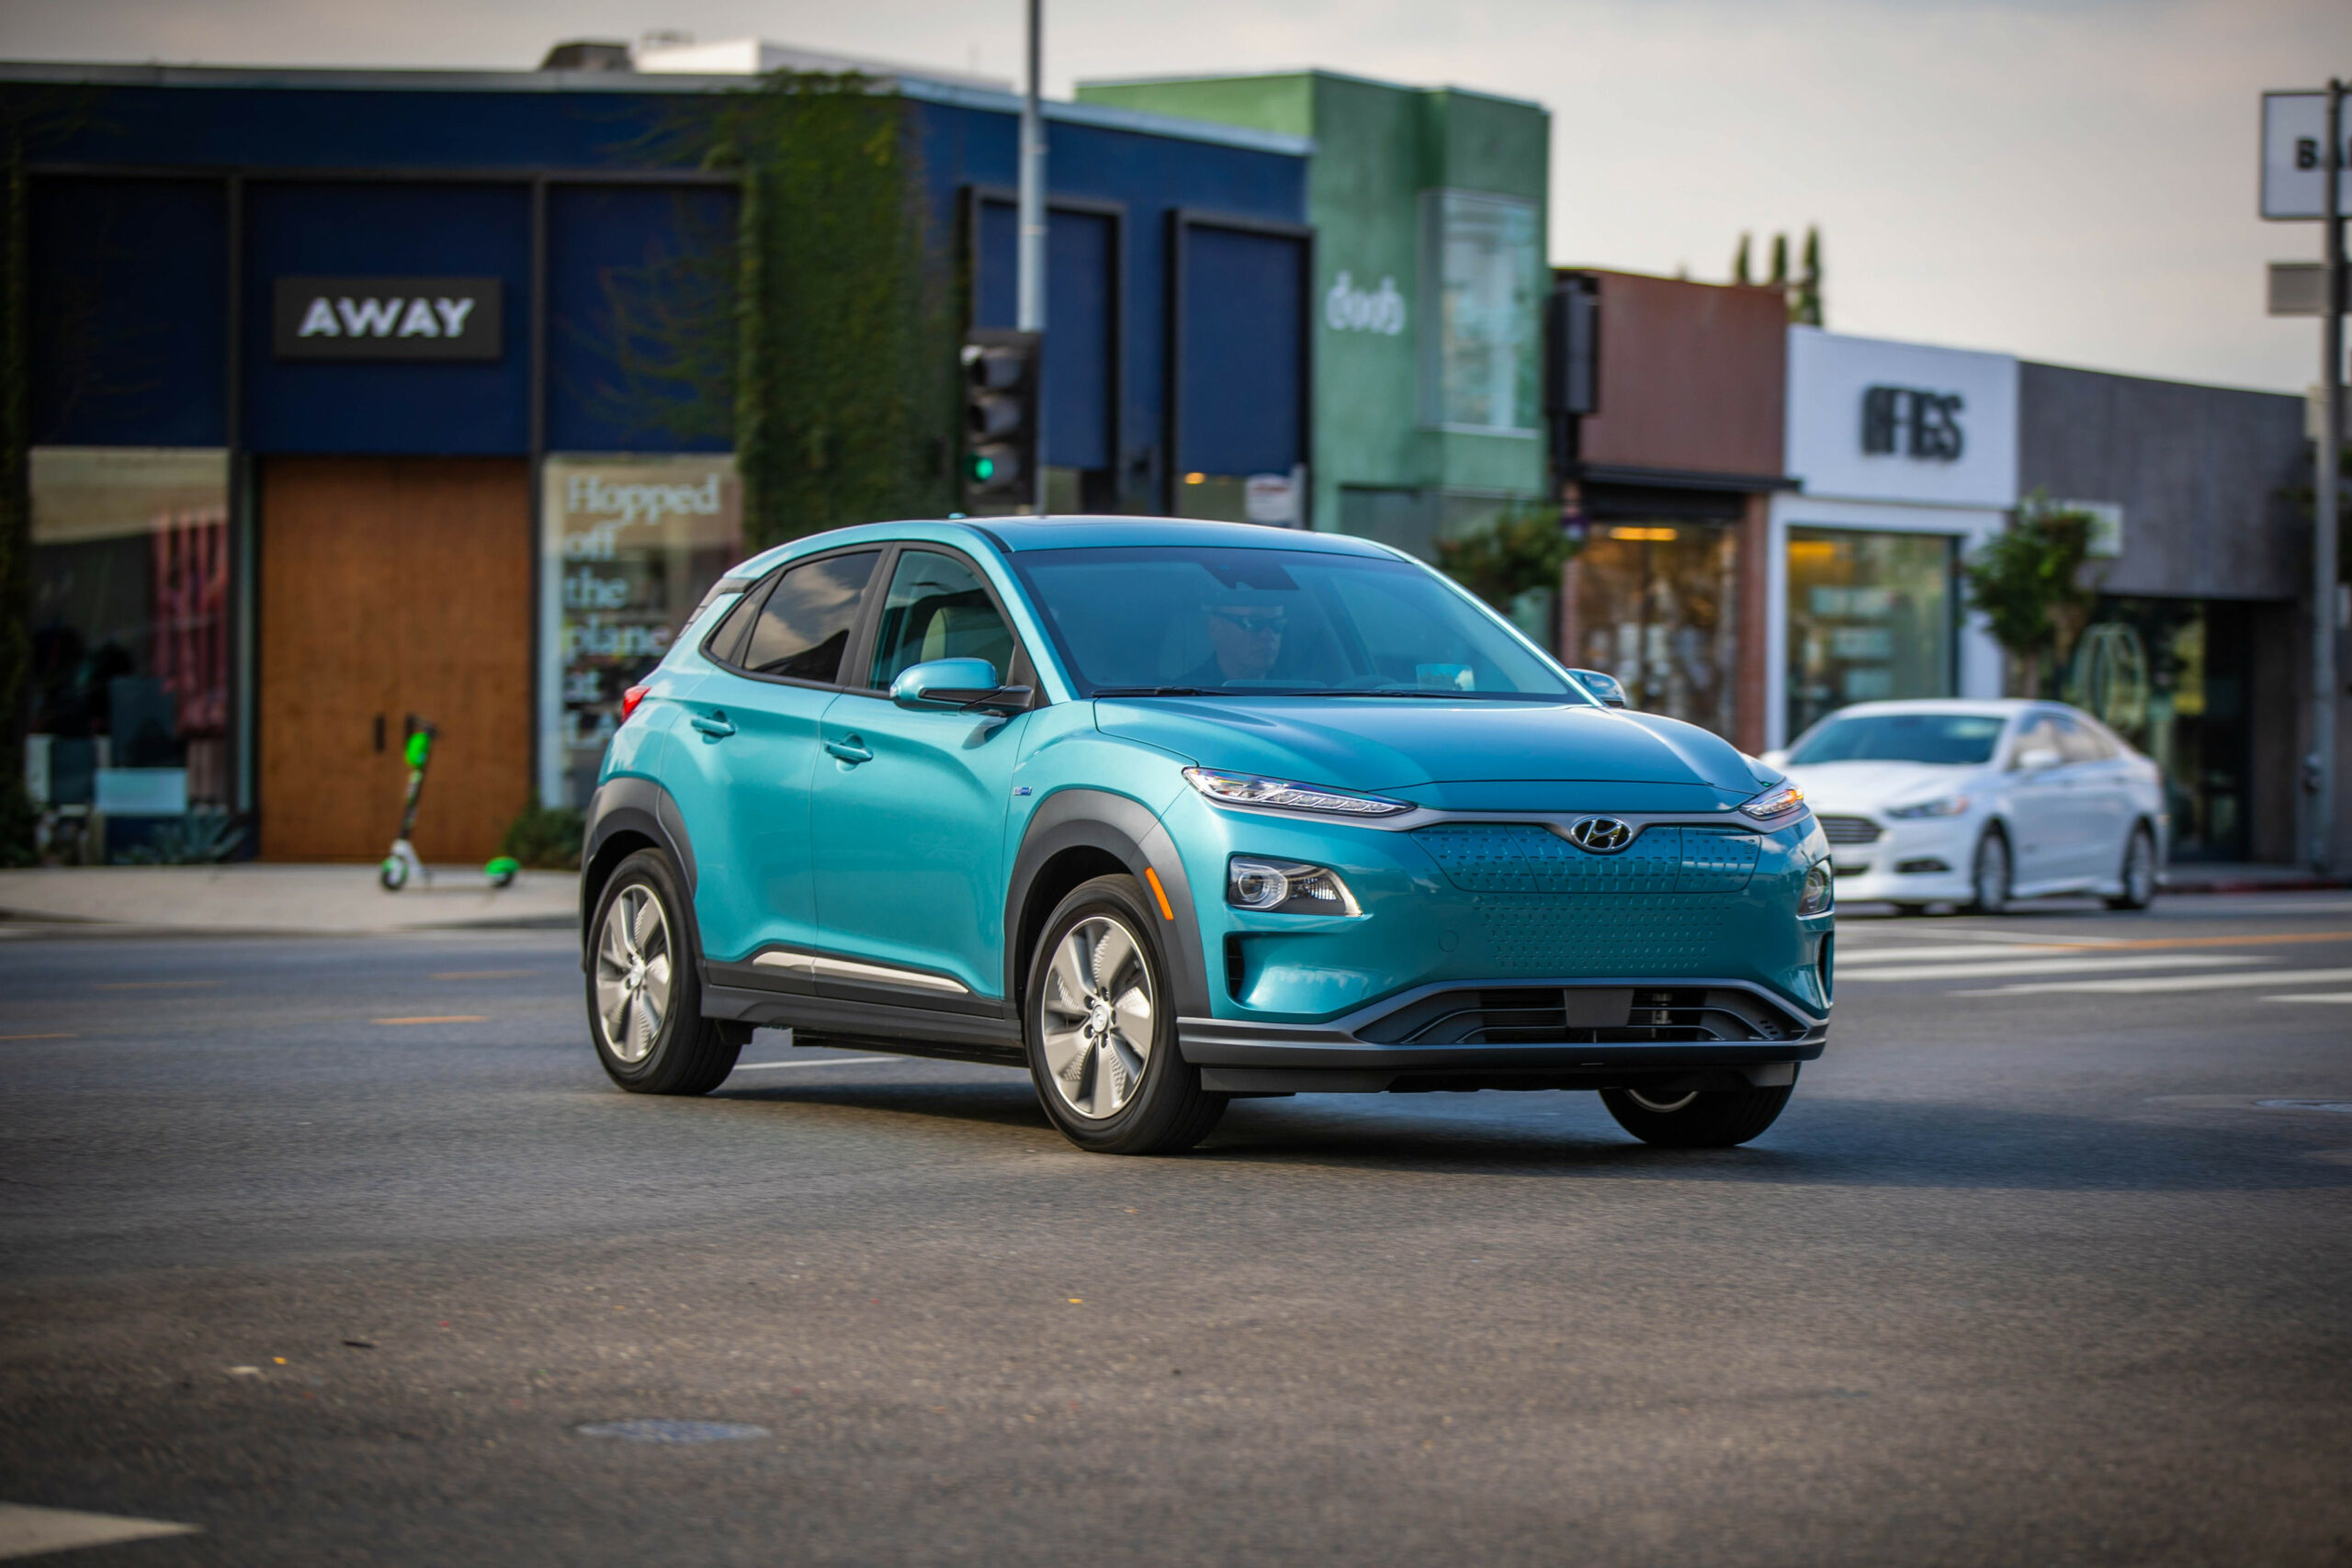 9 Hyundai Kona Electric Review, Pricing, and Specs